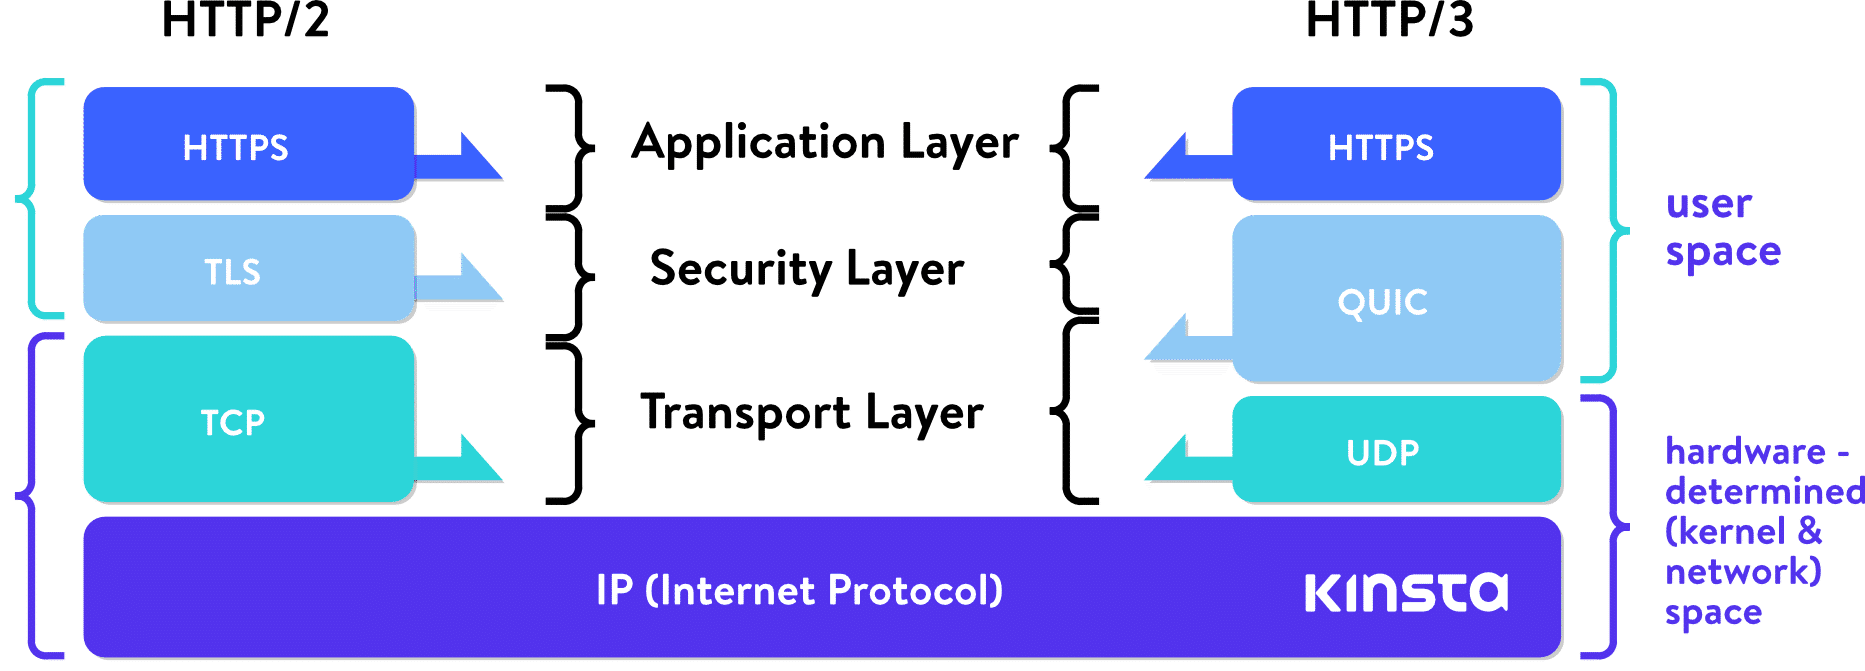 HTTP/2 stack vs HTTP/3 stack